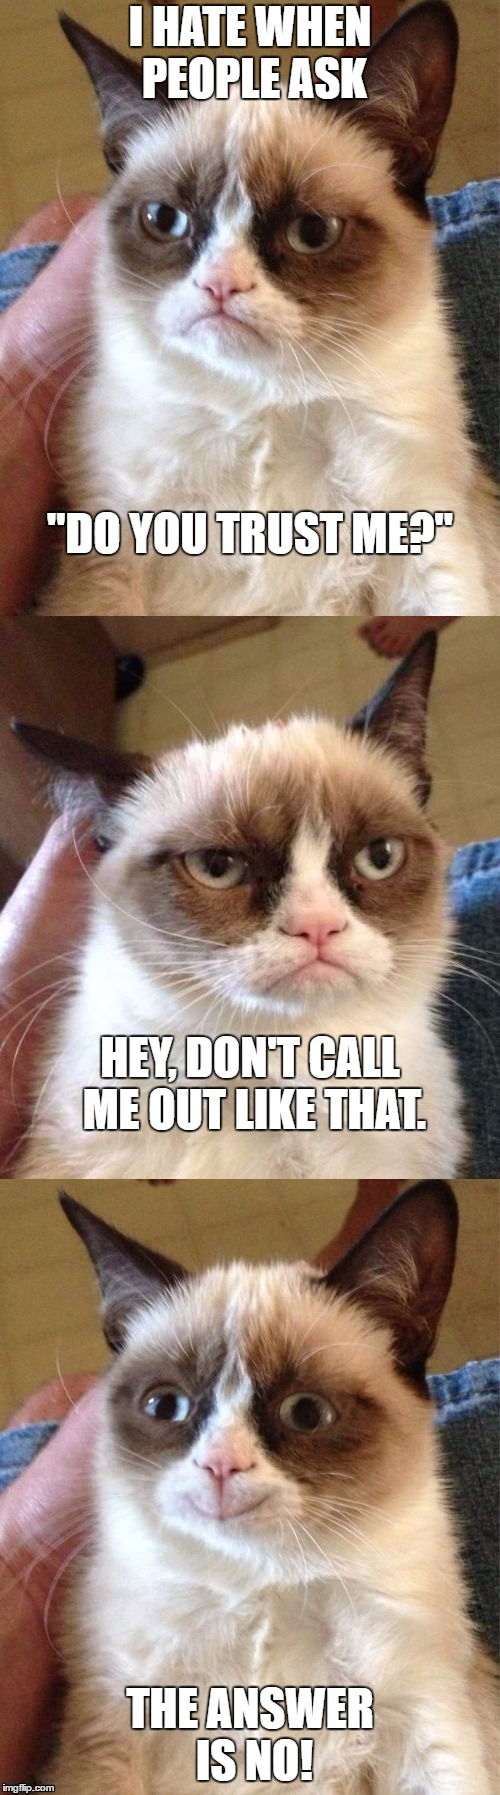 "Bad Pun Grumpy Cat |  I HATE WHEN PEOPLE ASK; ""DO YOU TRUST ME?""; HEY, DON'T CALL ME OUT LIKE THAT. THE ANSWER IS NO! 